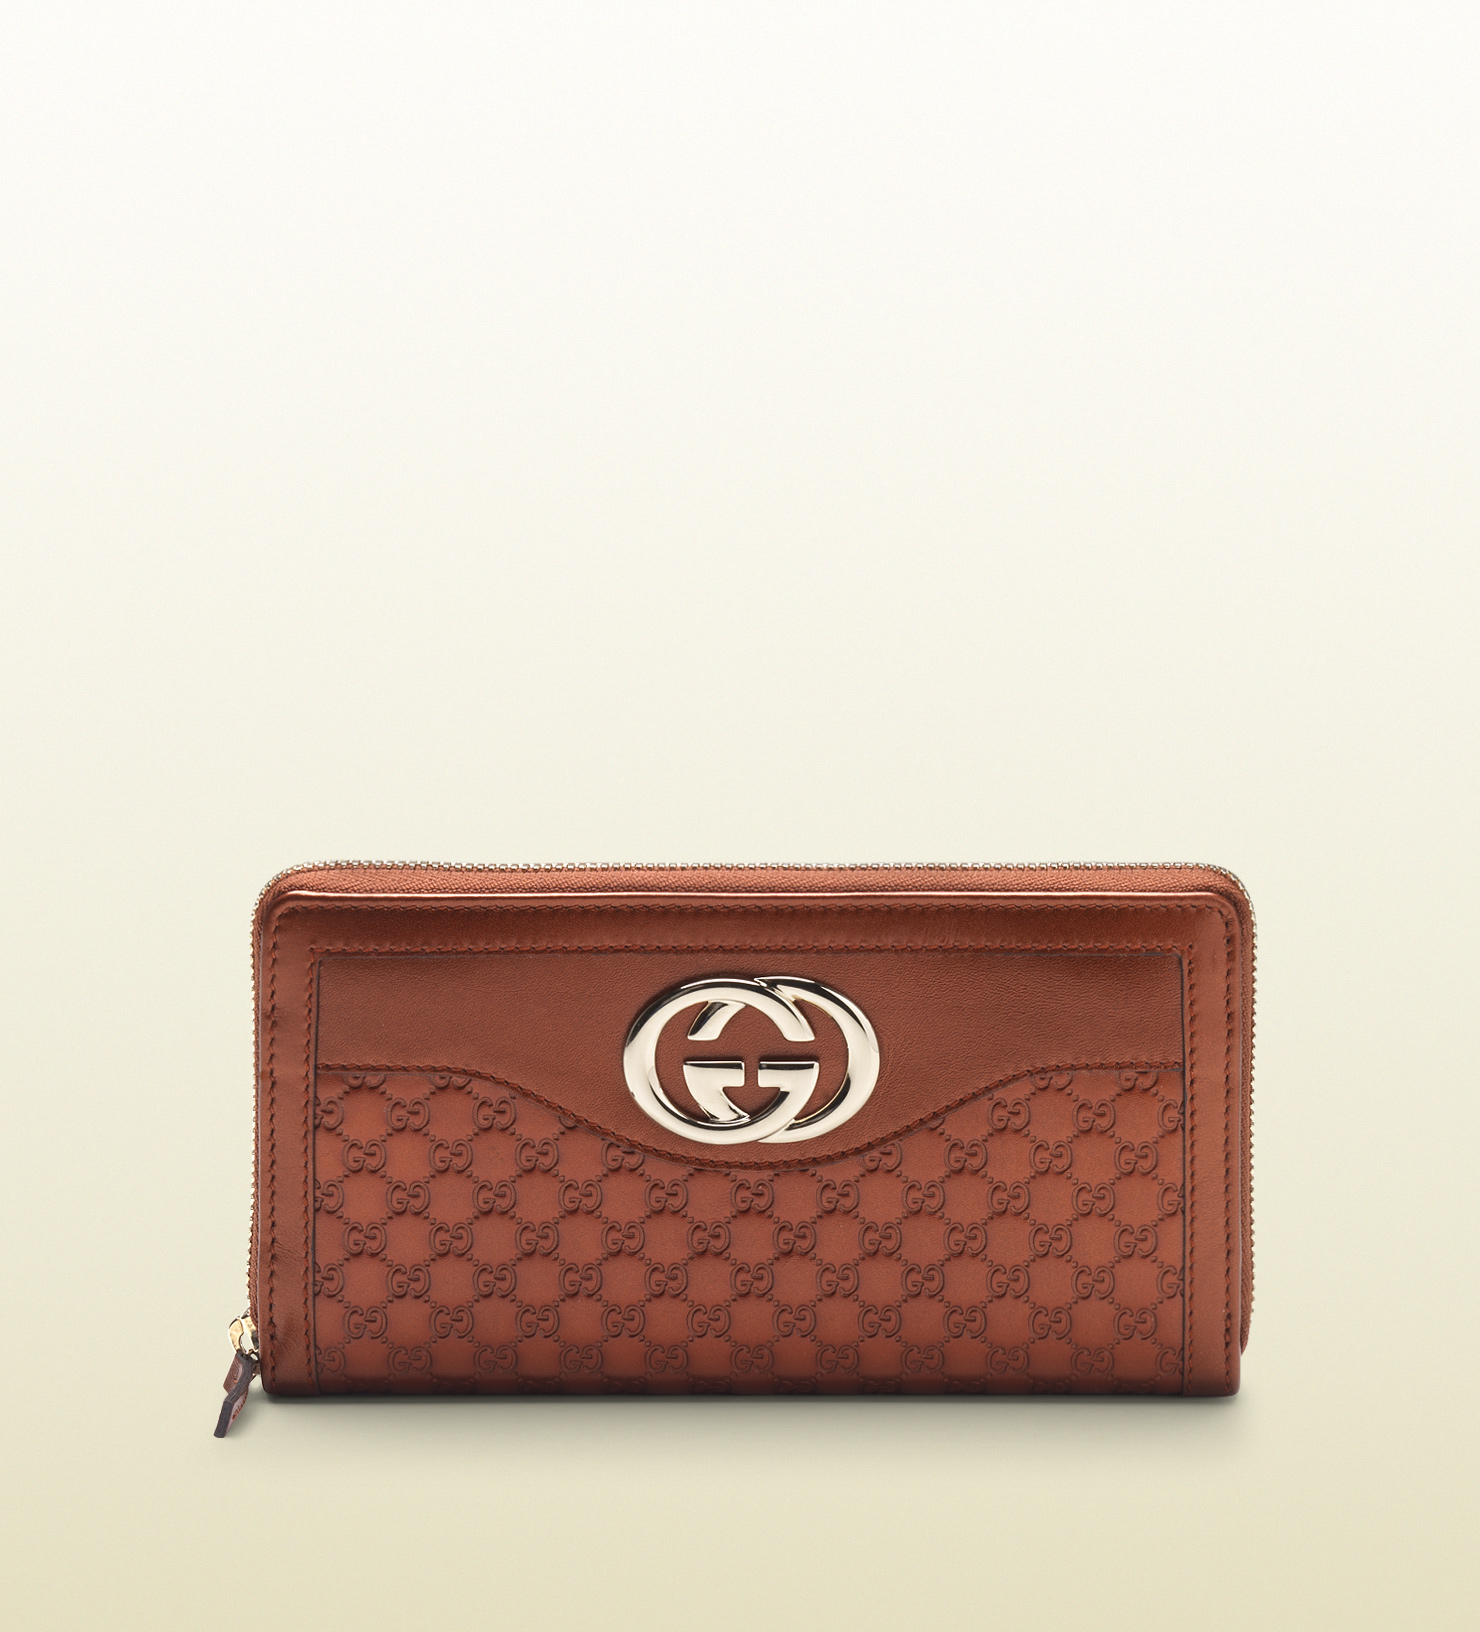 7516a86dab7 Lyst - Gucci Sukey Burnt Orange Metallic Microguccissima Leather Zip ...